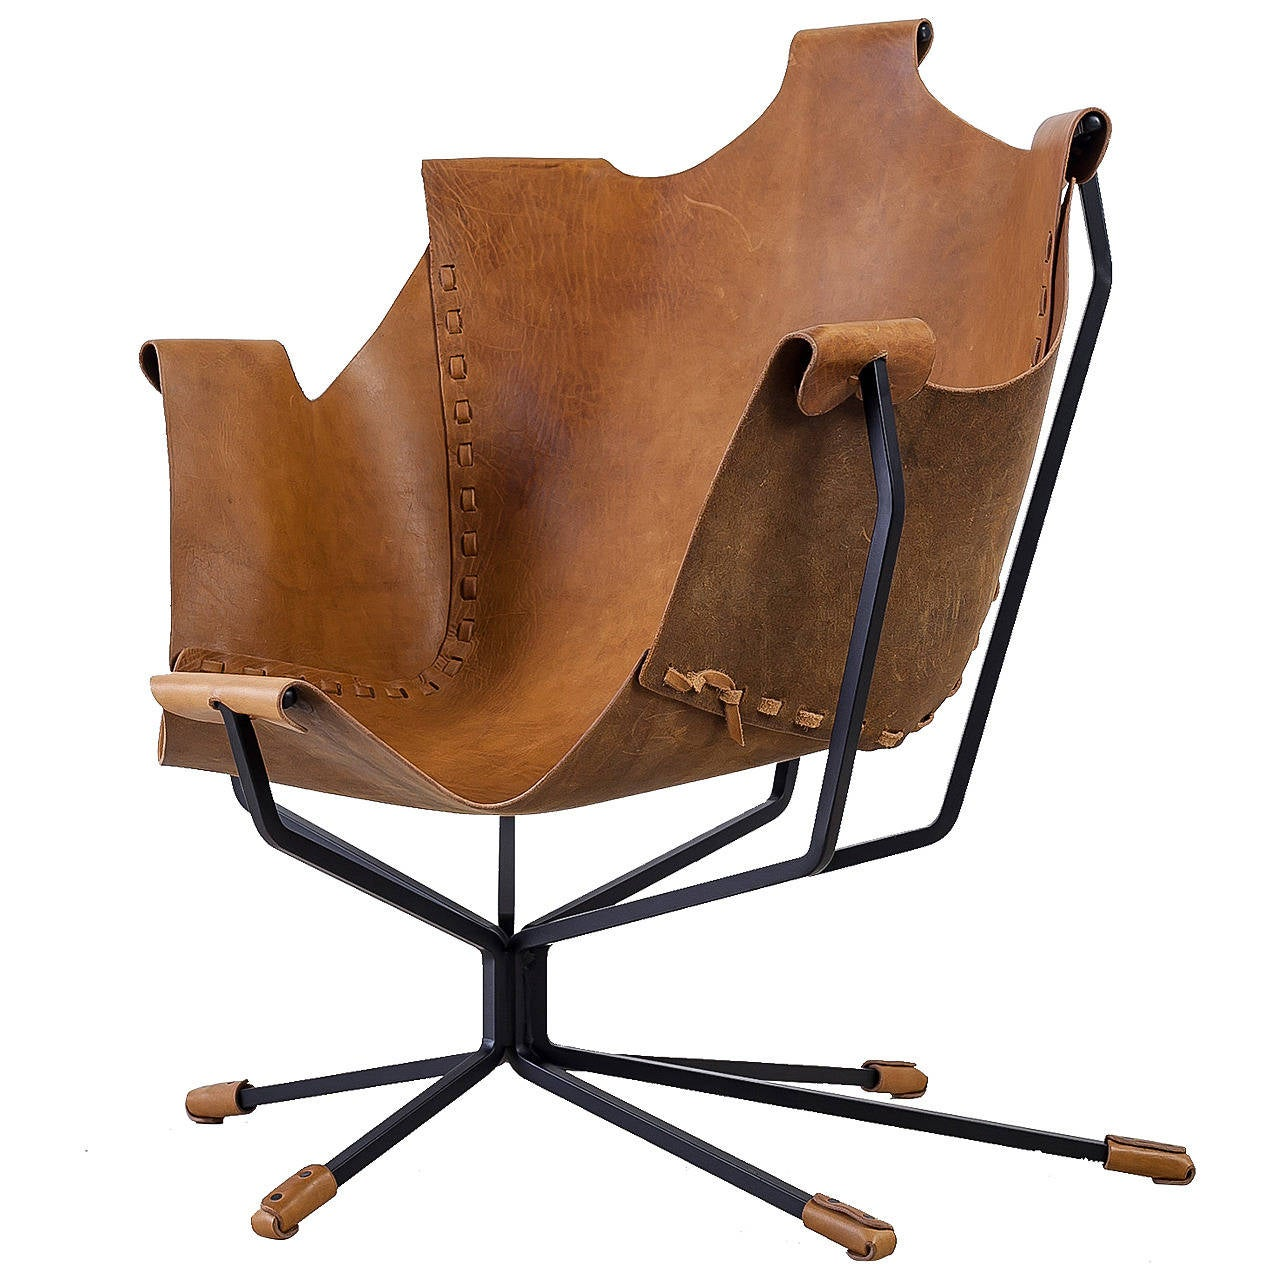 Special Edition Dan Wenger Sling Chair, USA, 1970s